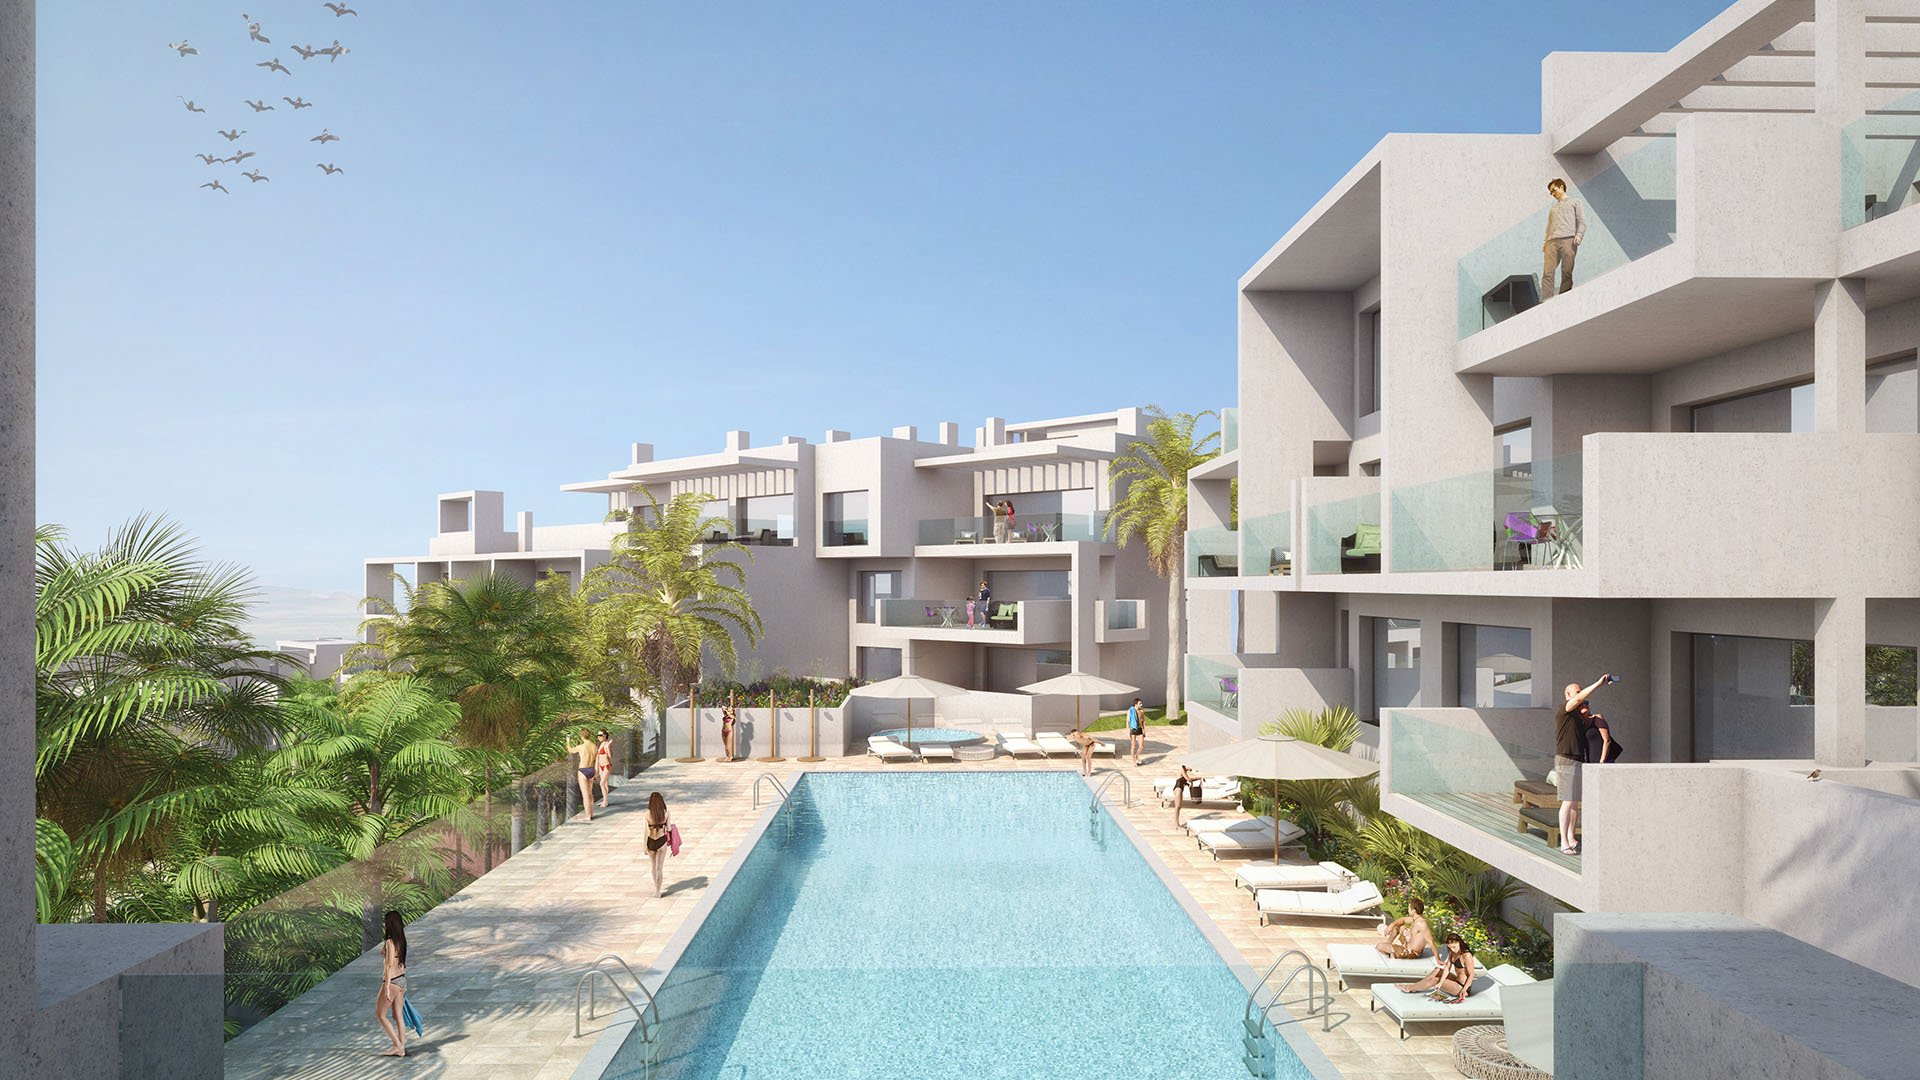 Scenic: Luxury apartments within walking distance from Estepona city center and the beach